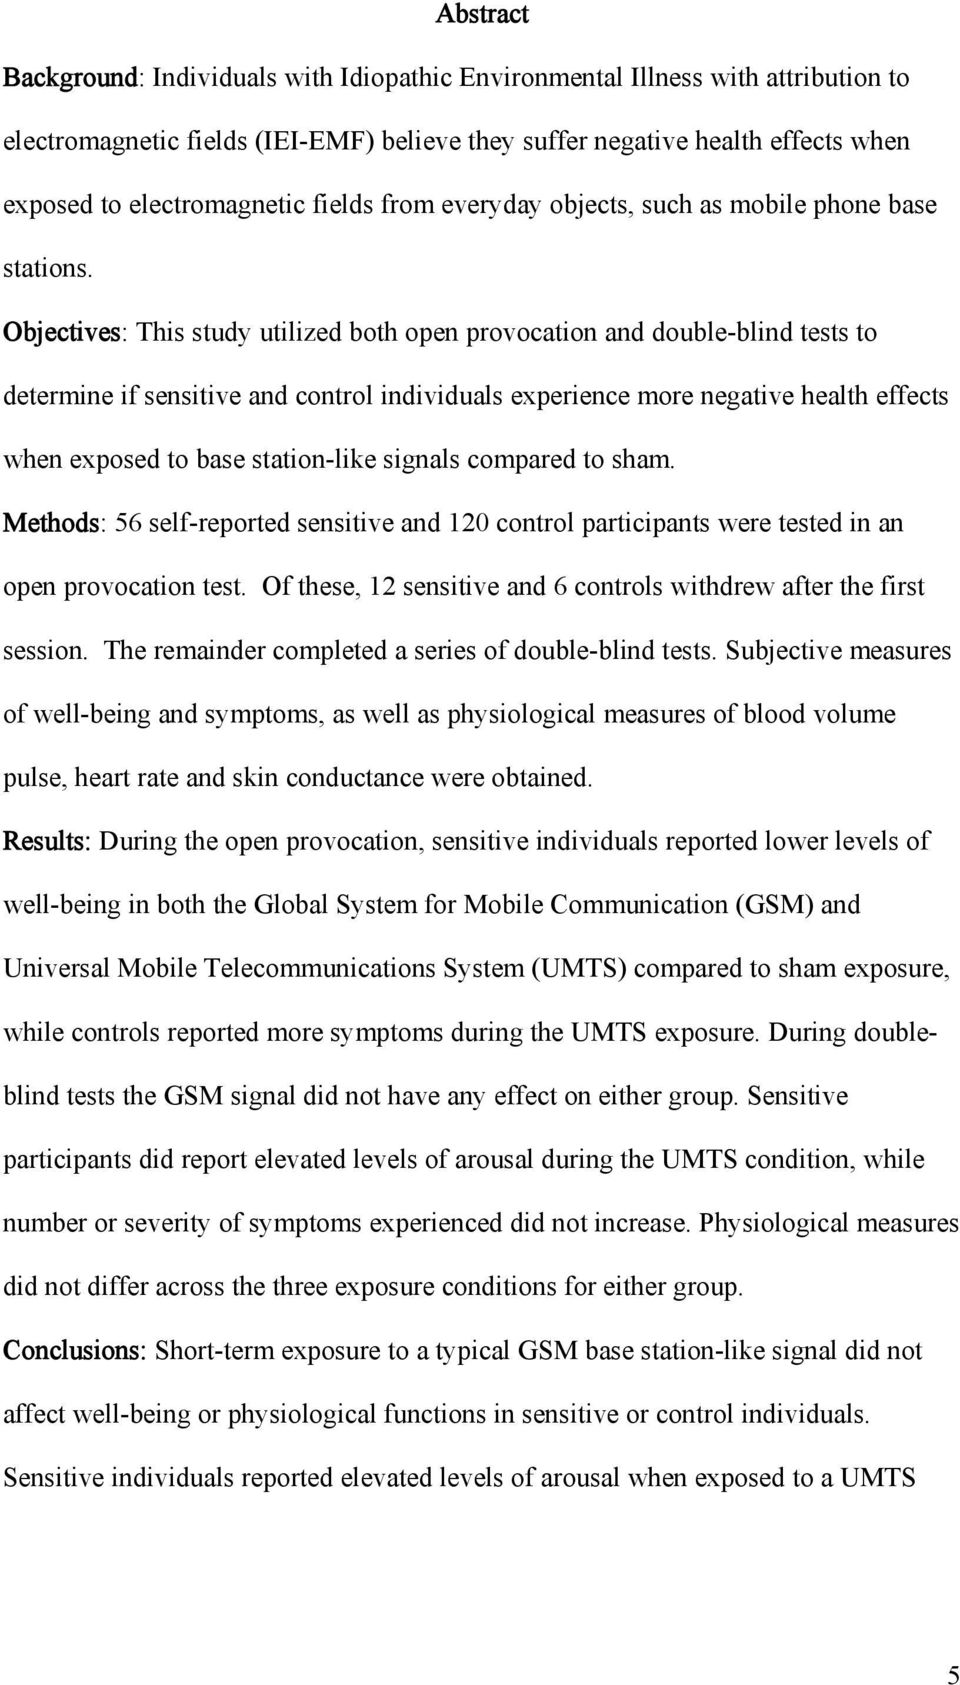 Objectives: This study utilized both open provocation and double-blind tests to determine if sensitive and control individuals experience more negative health effects when exposed to base